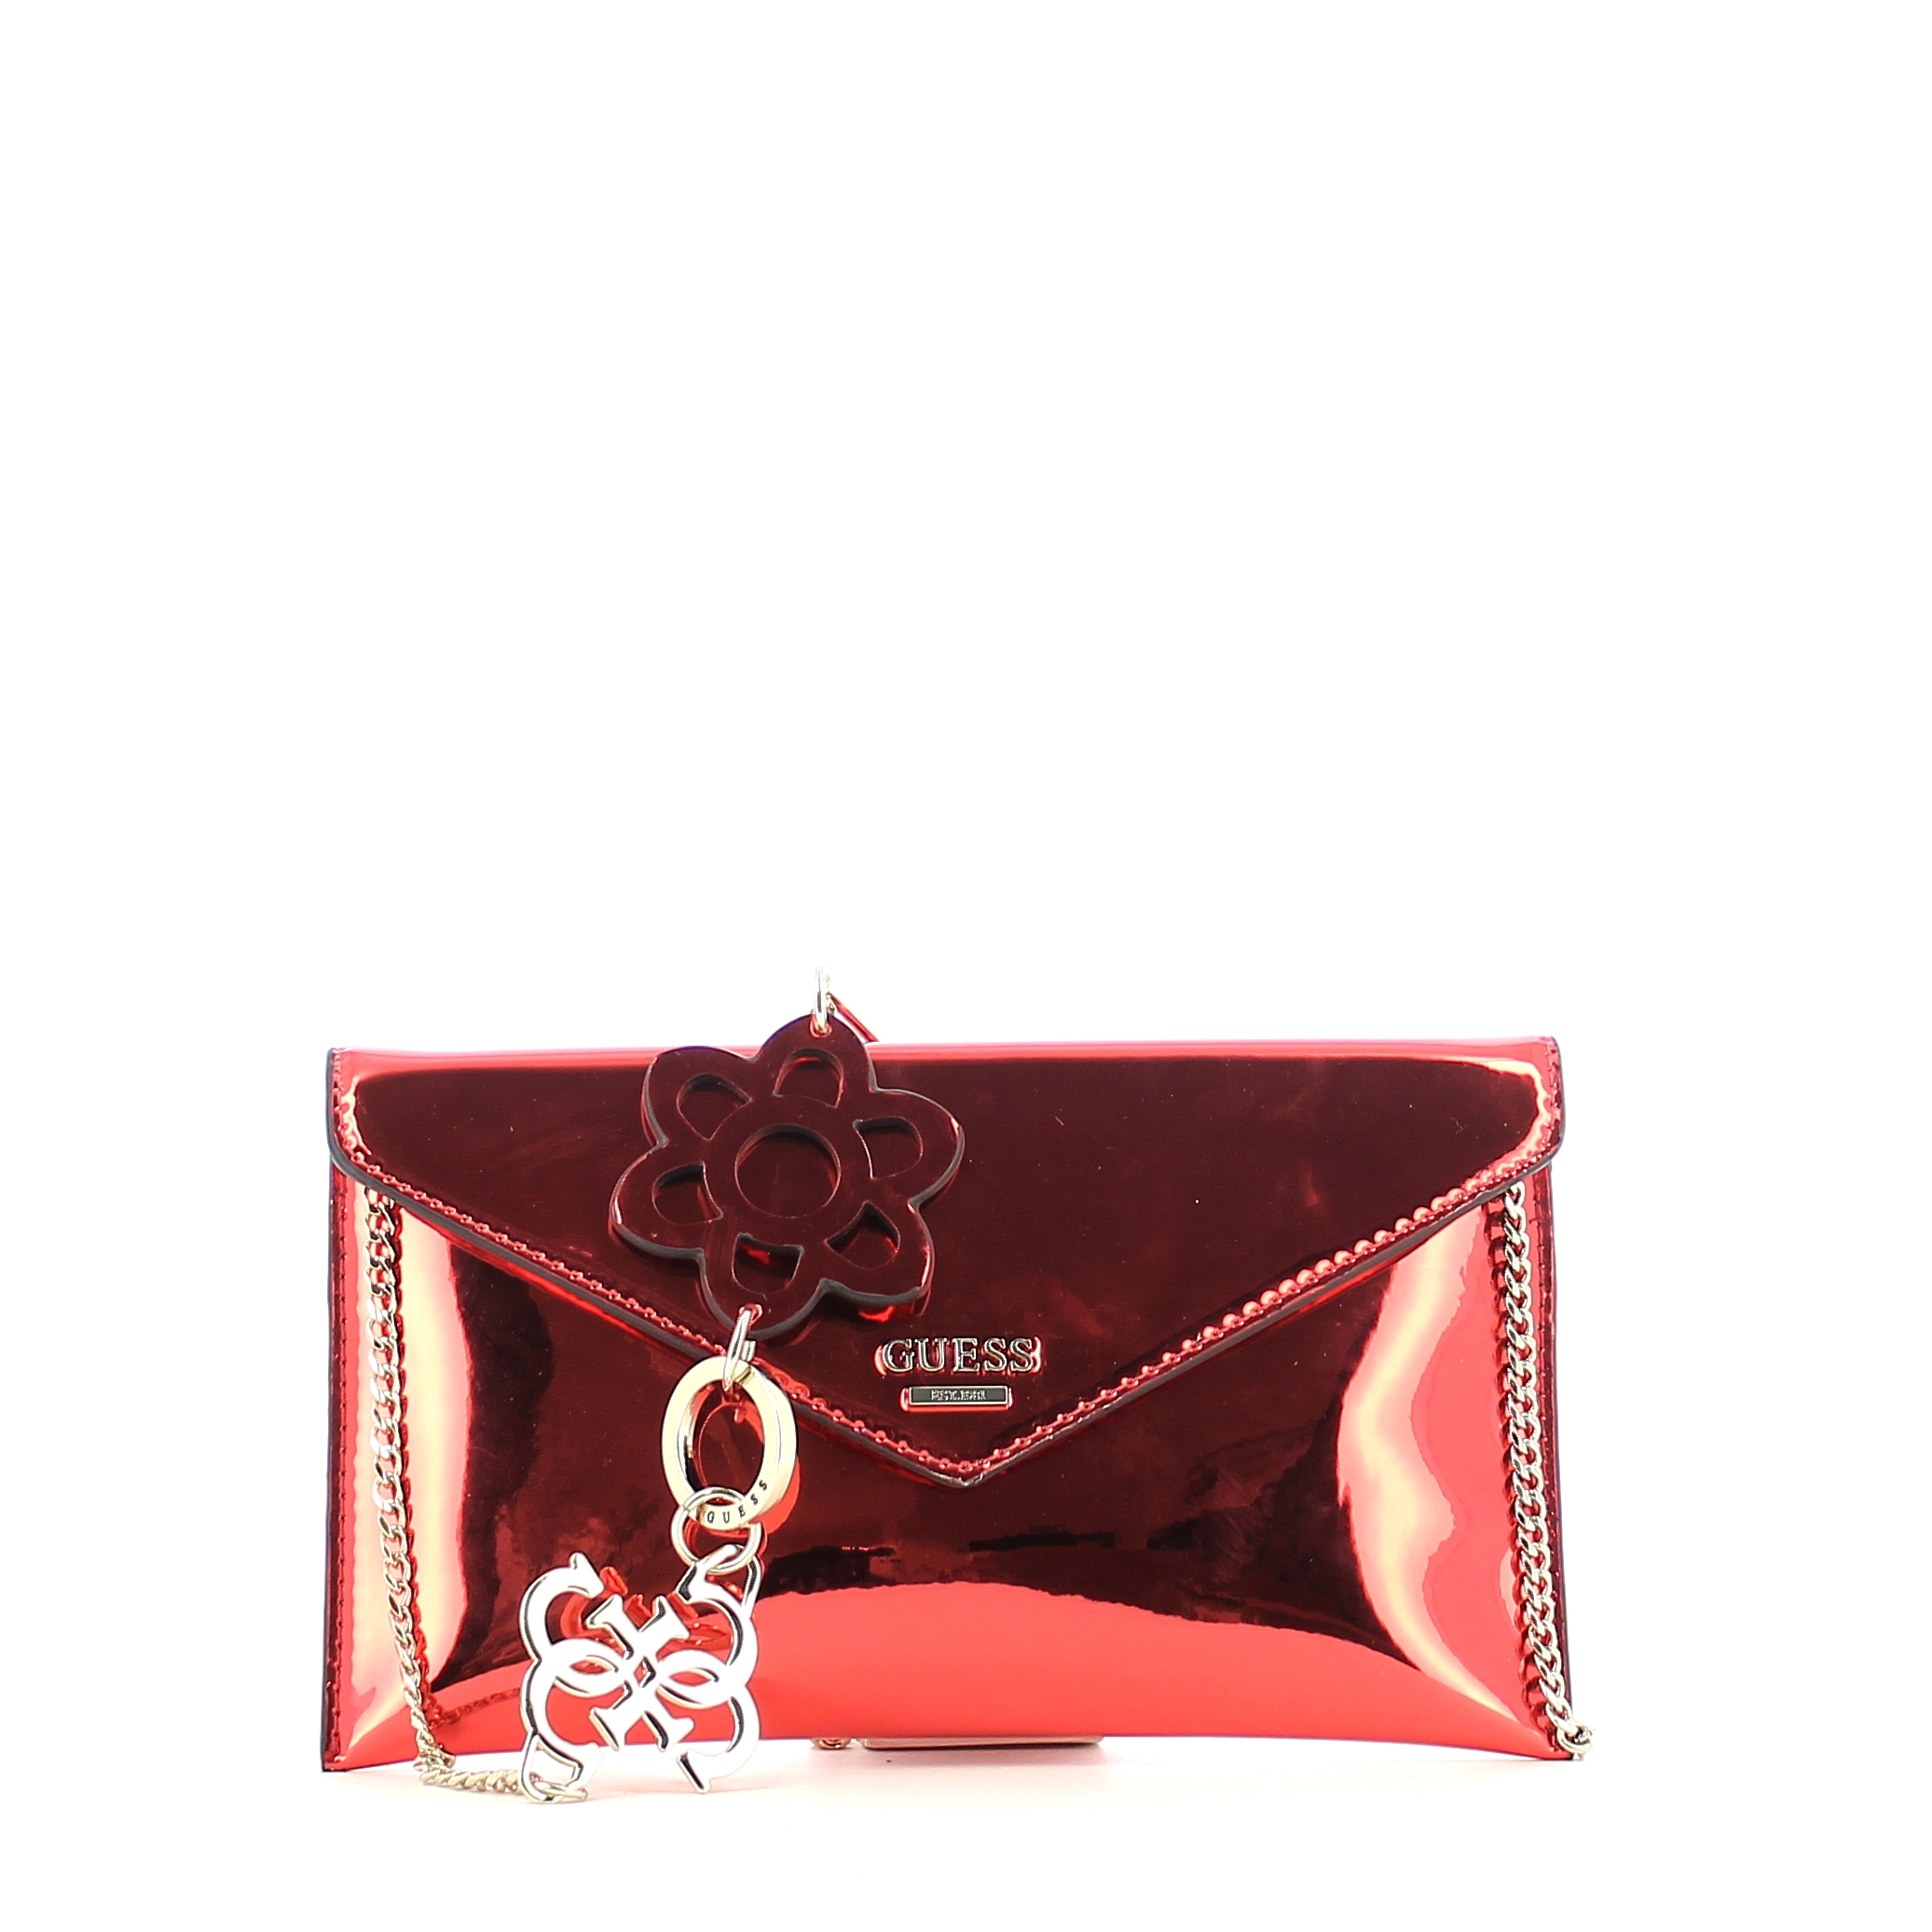 Guess Tracollina Clutch Tracollina Tracollina Spring Fling Spring Clutch Spring Clutch Guess Fling Fling Guess TwwqafgWO